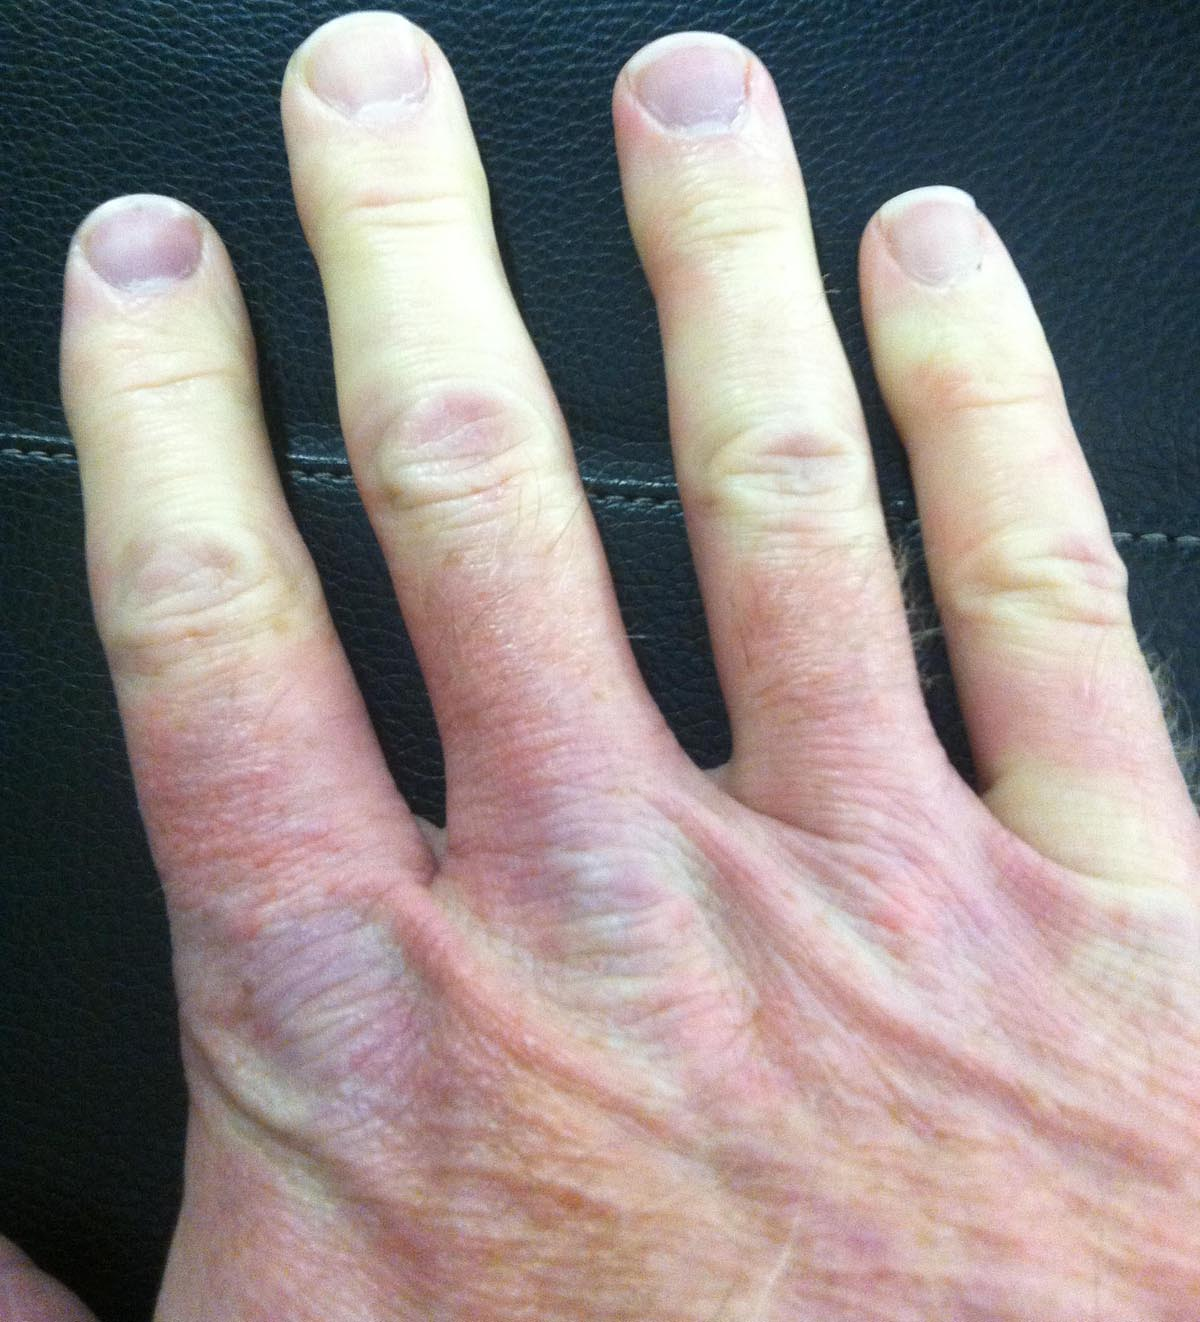 Finger Numb From Gymnastic Rings